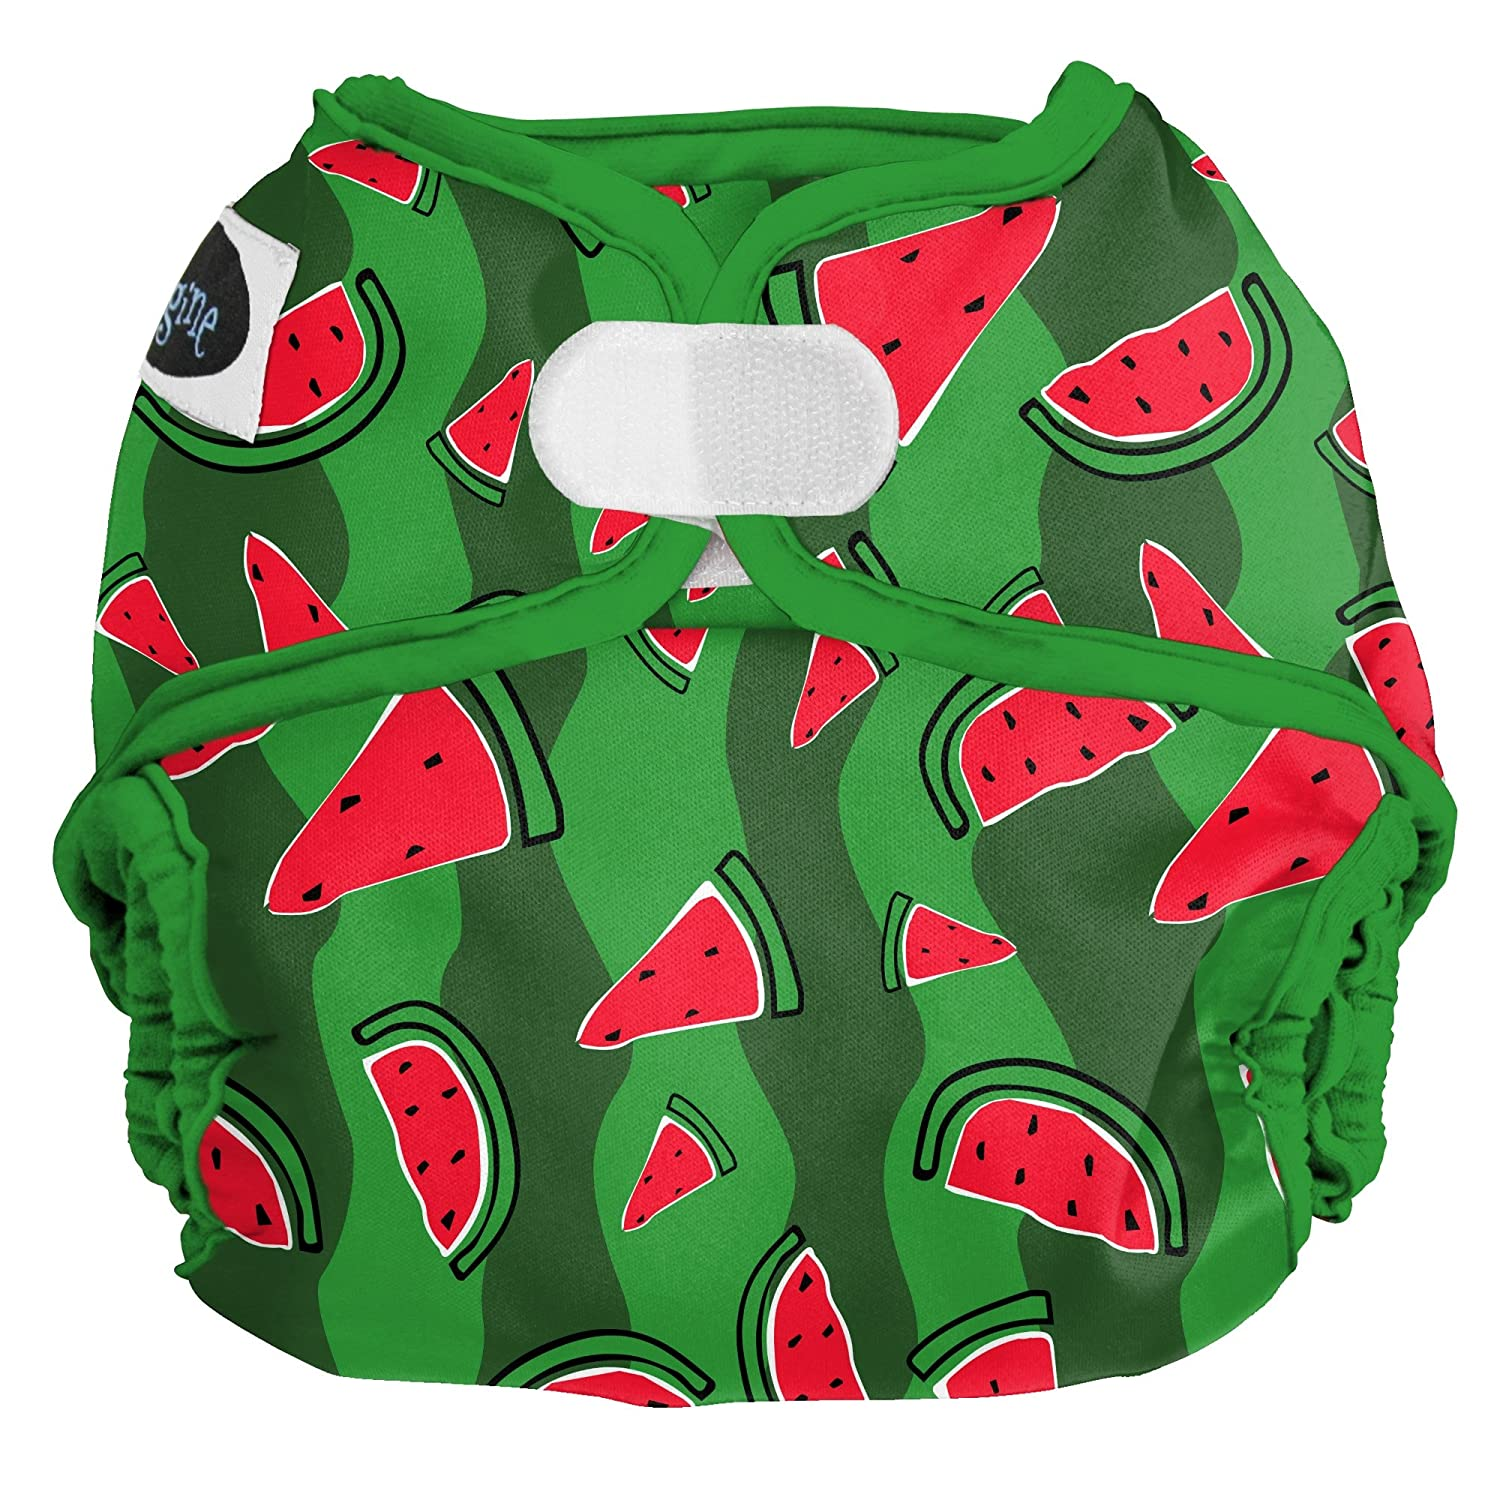 Imagine Baby Products One Size Cloth Diaper Cover Watermelon Patch Snap